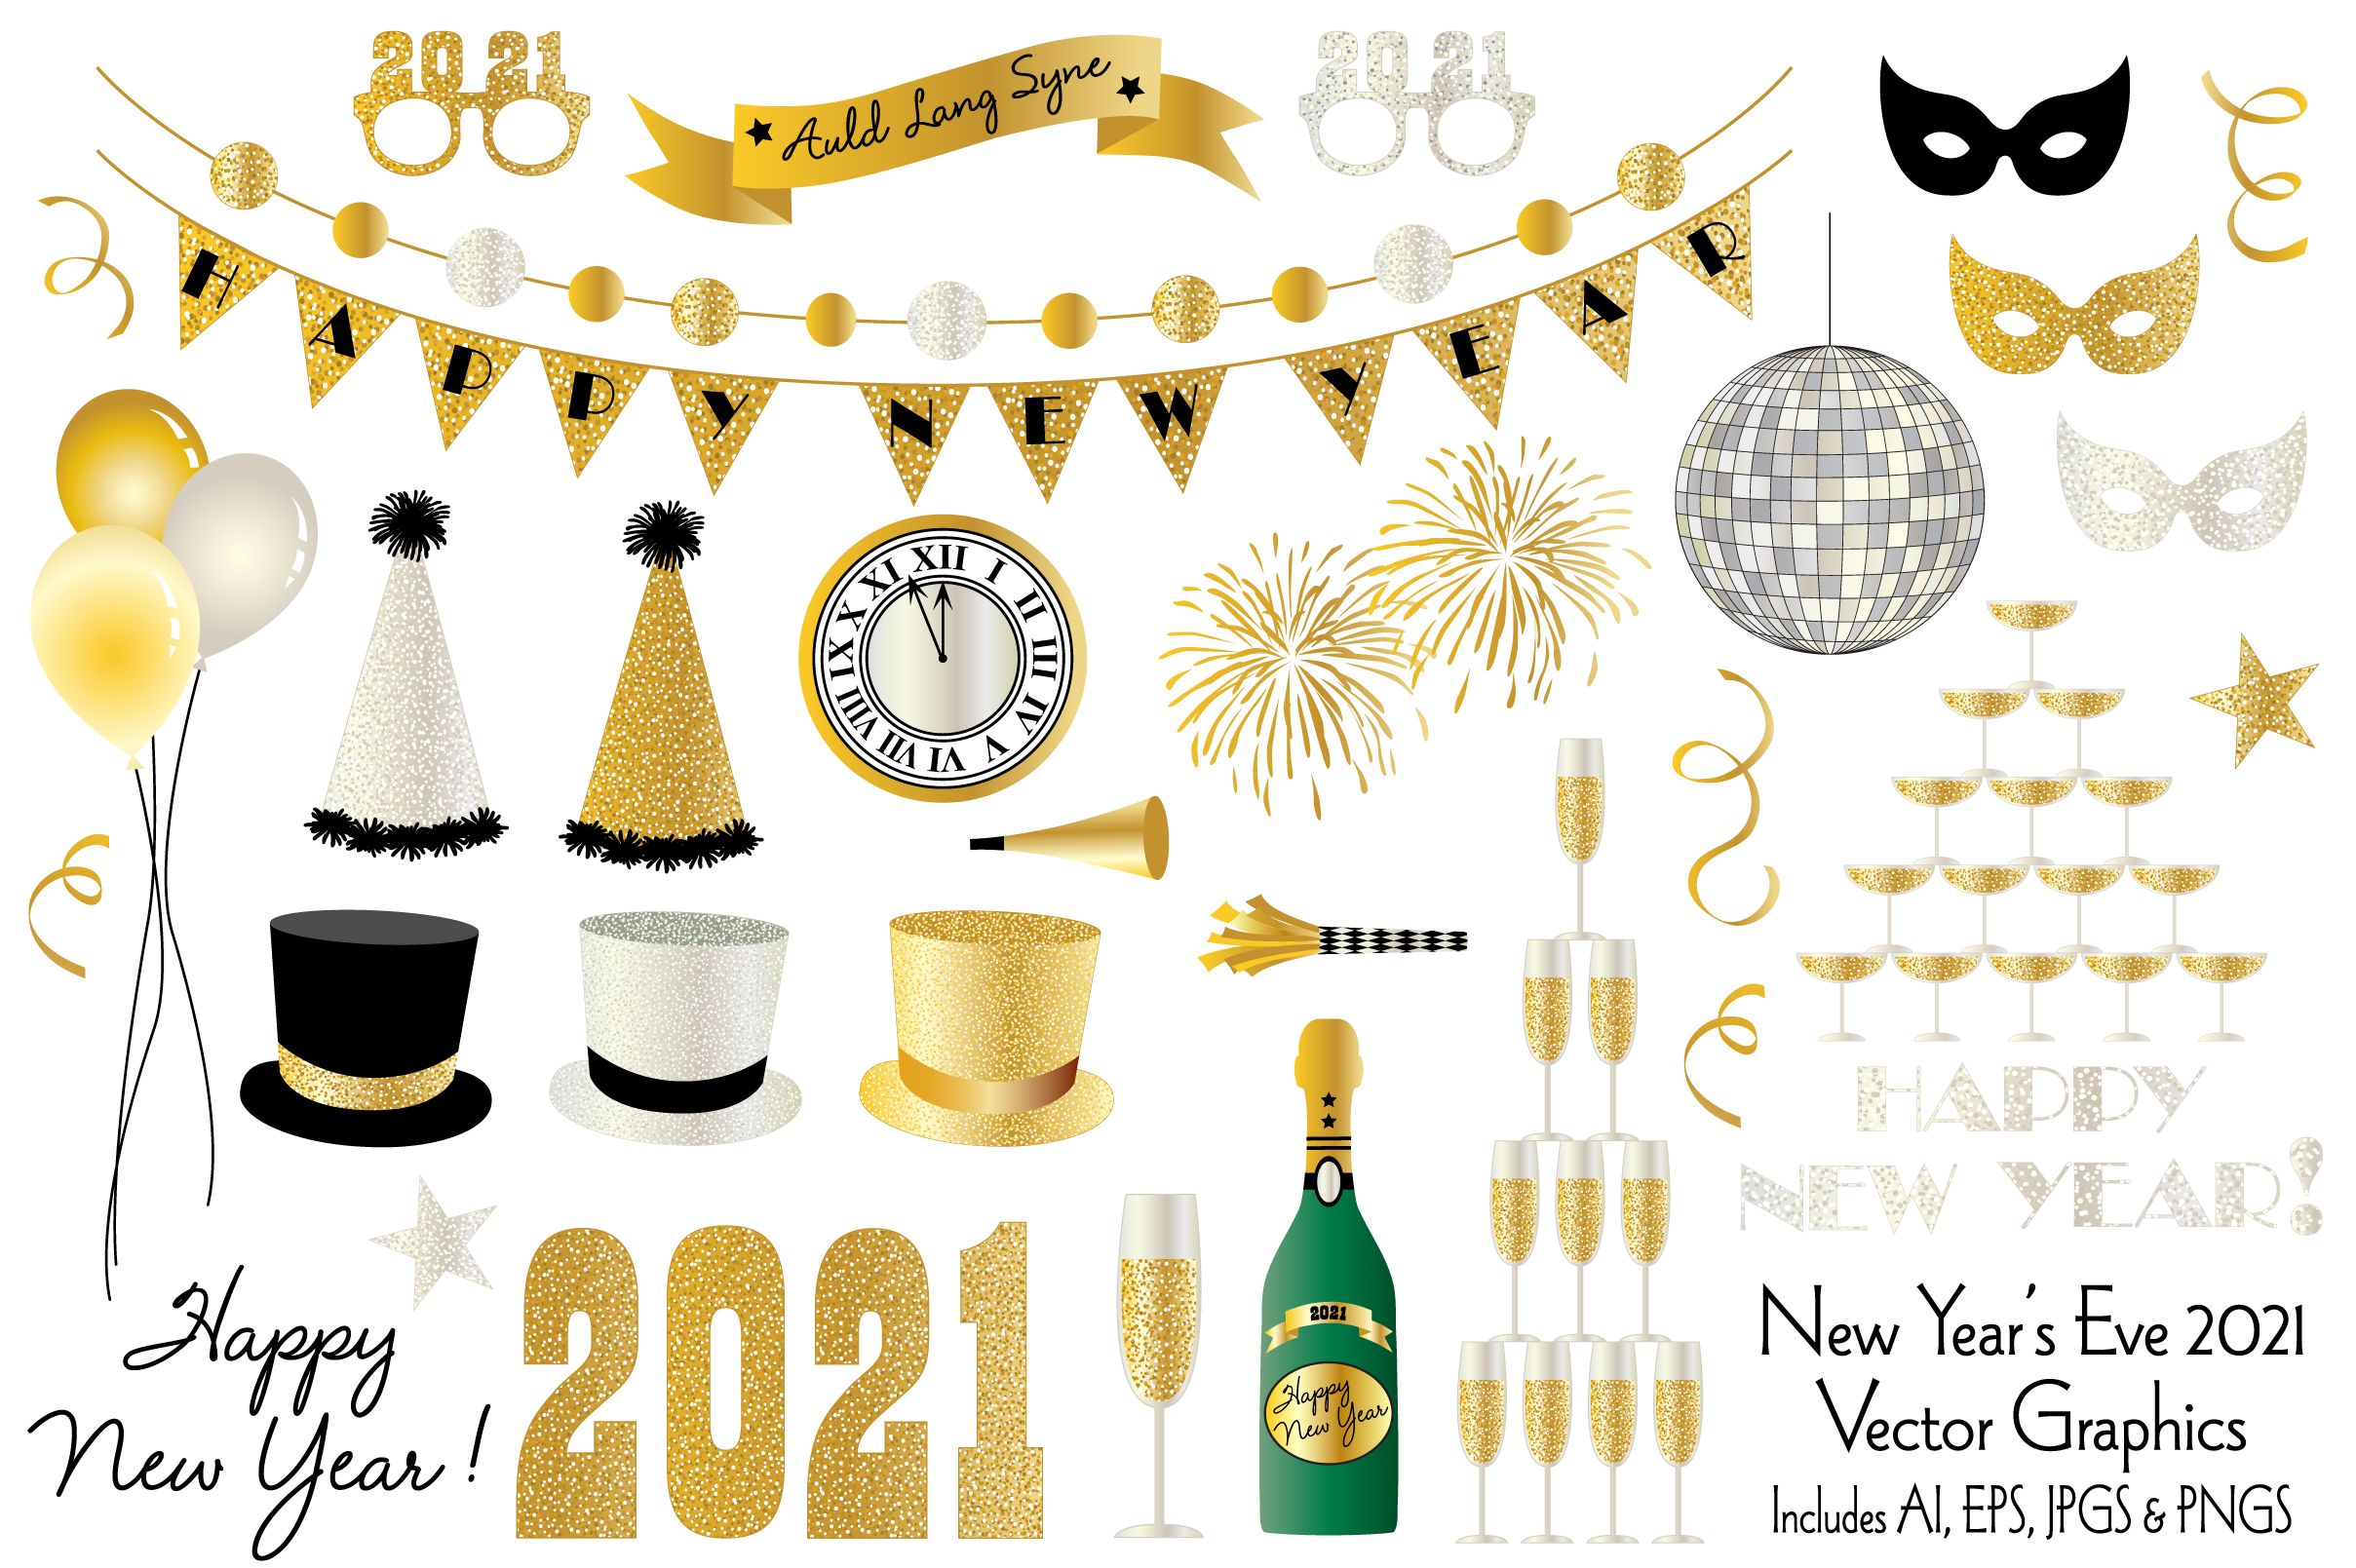 new year s eve 2021 clipart graphics graphic by melissa held designs creative fabrica new year s eve 2021 clipart graphics